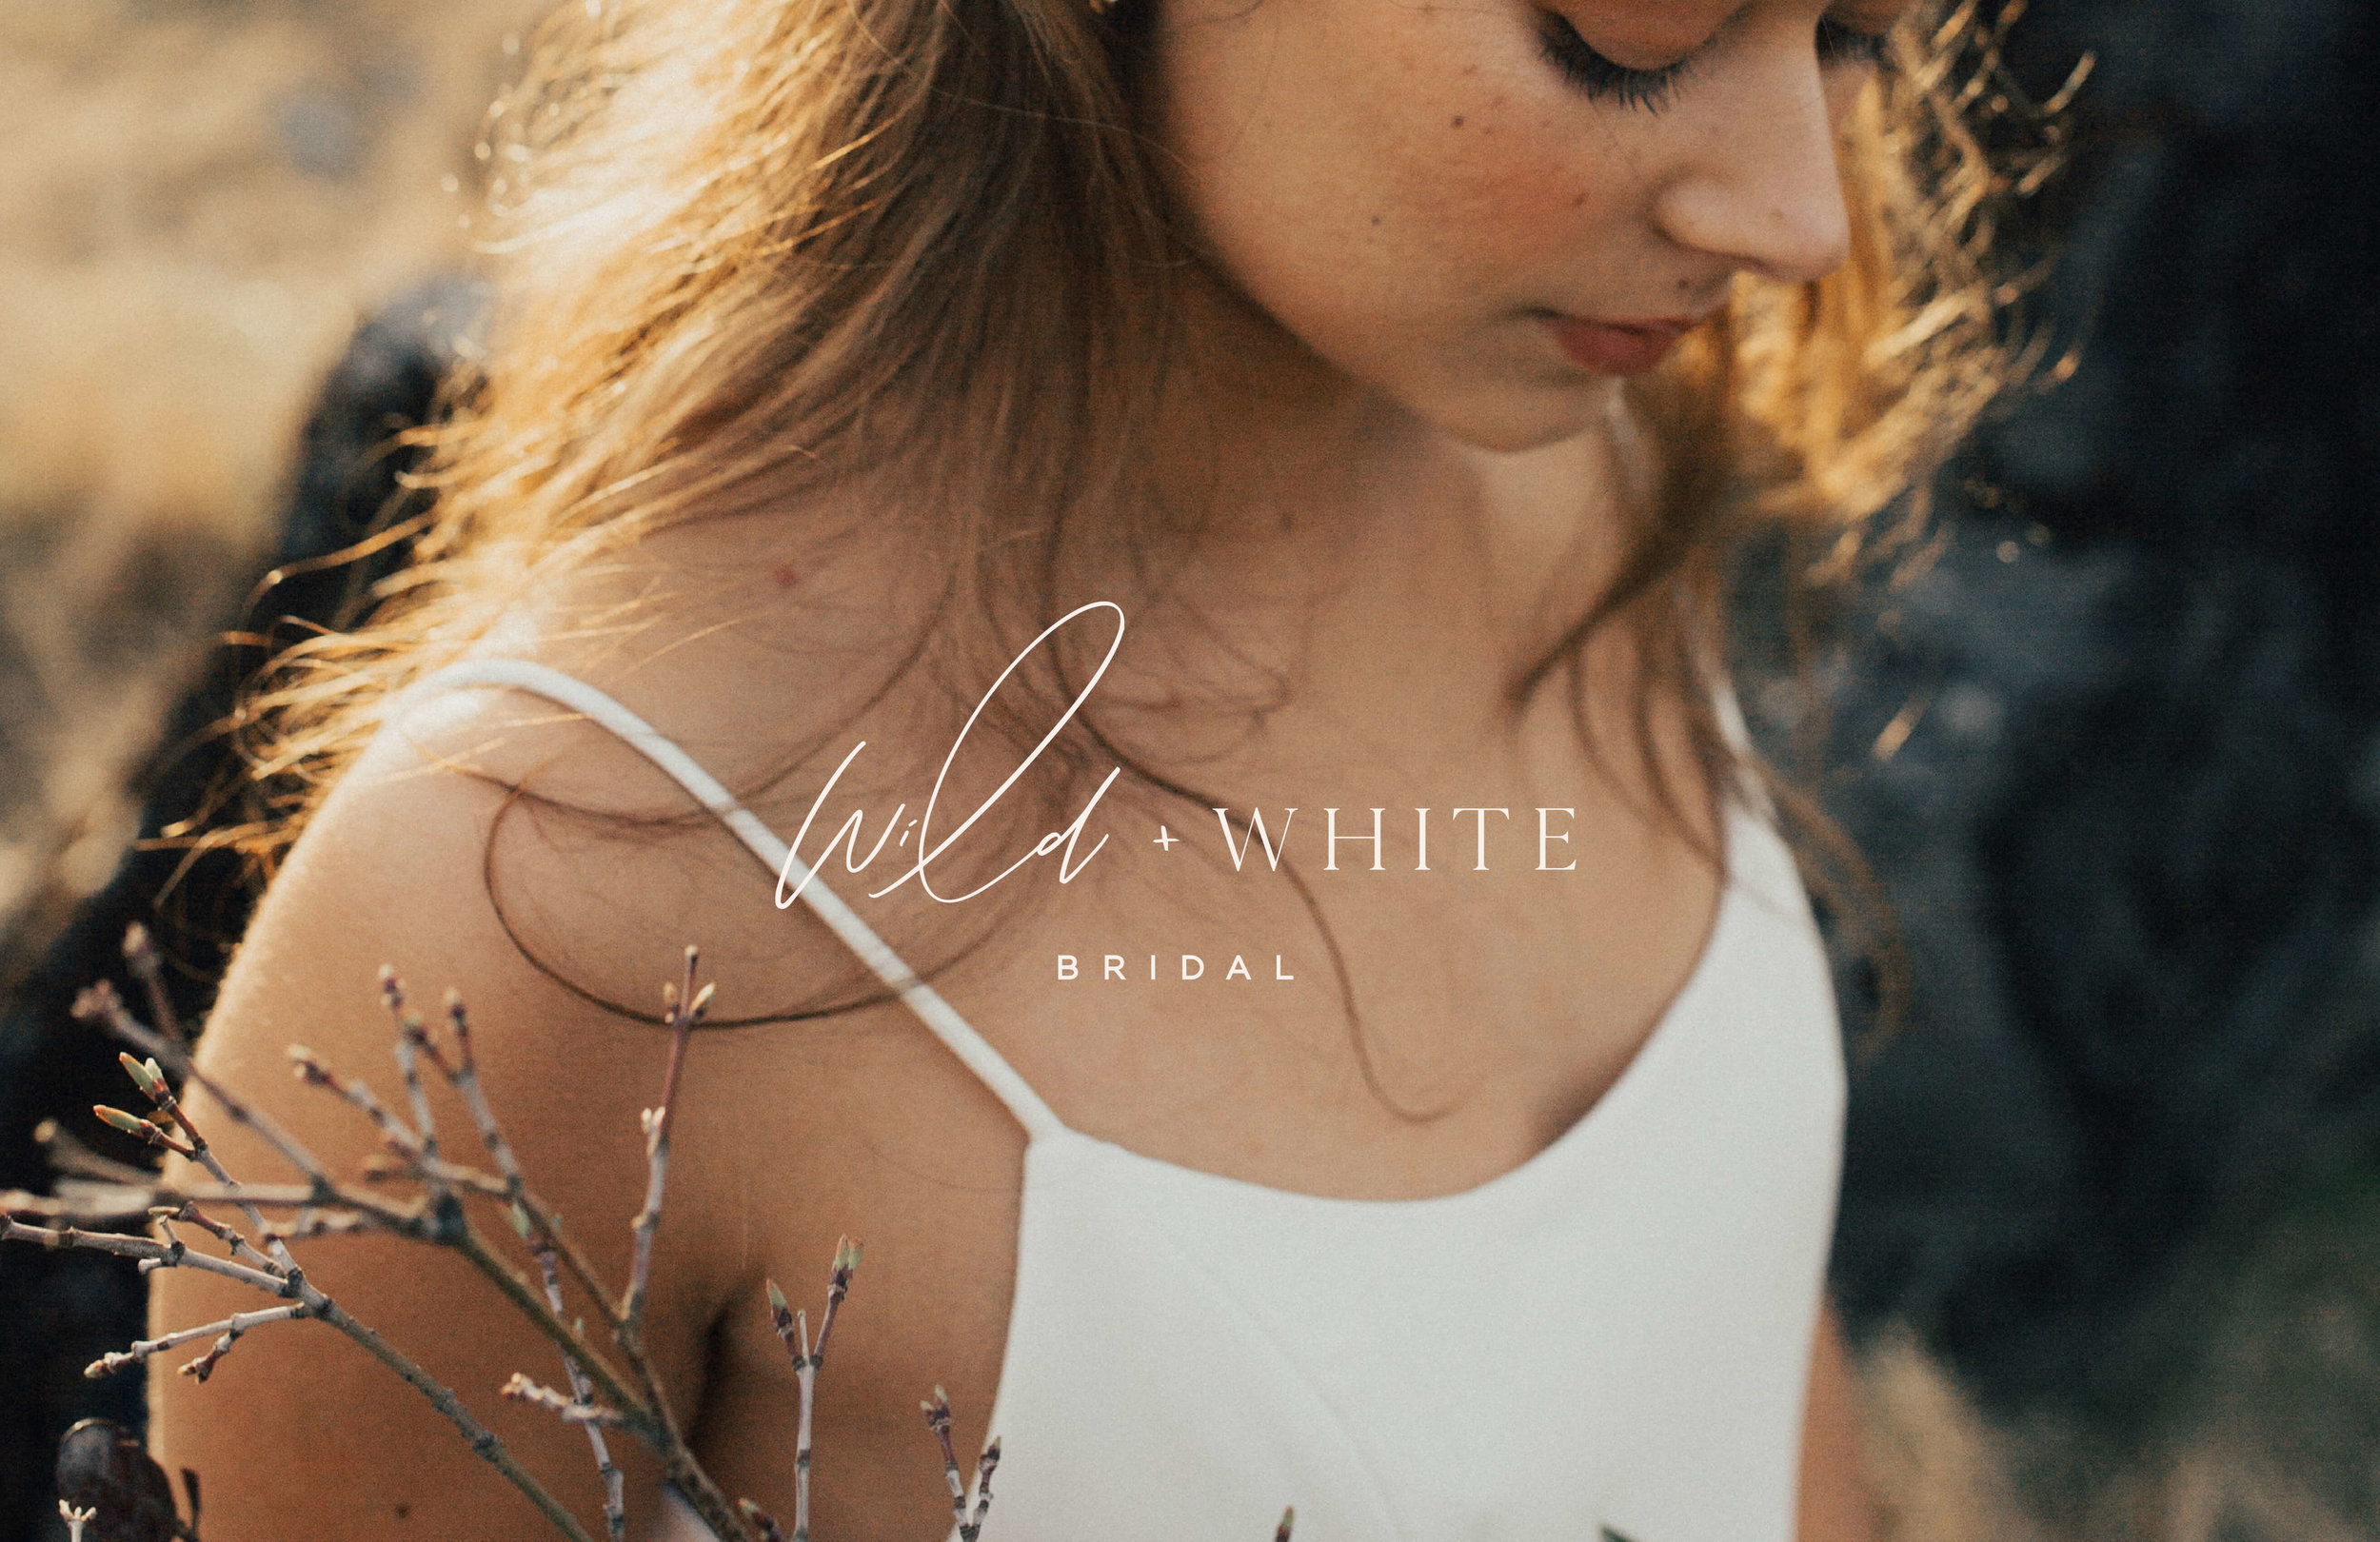 Wild and White Bridal (by Renee Edwards Photography) - January Made Design